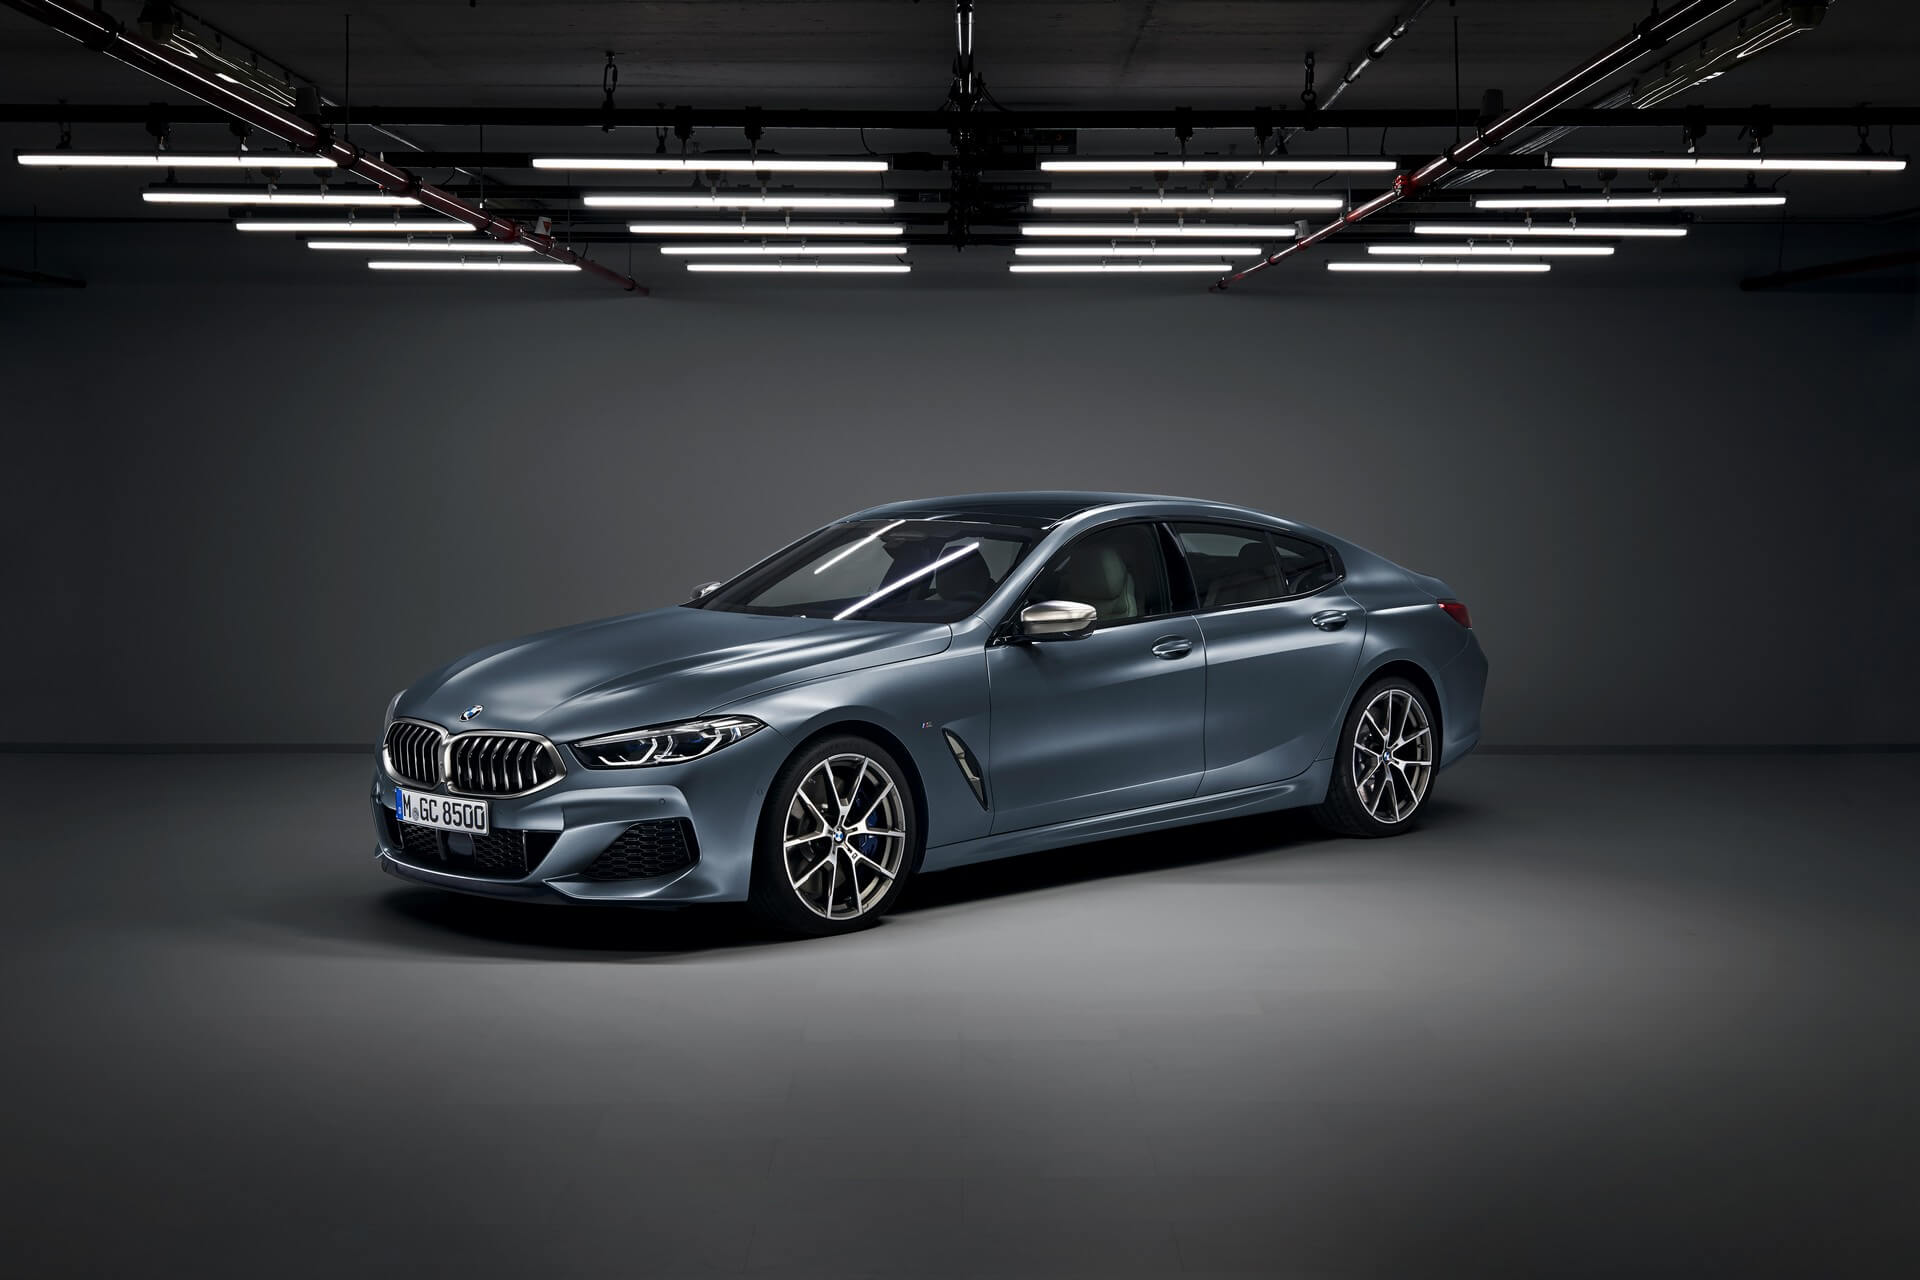 2020-bmw-8-series-gran-coupe-5